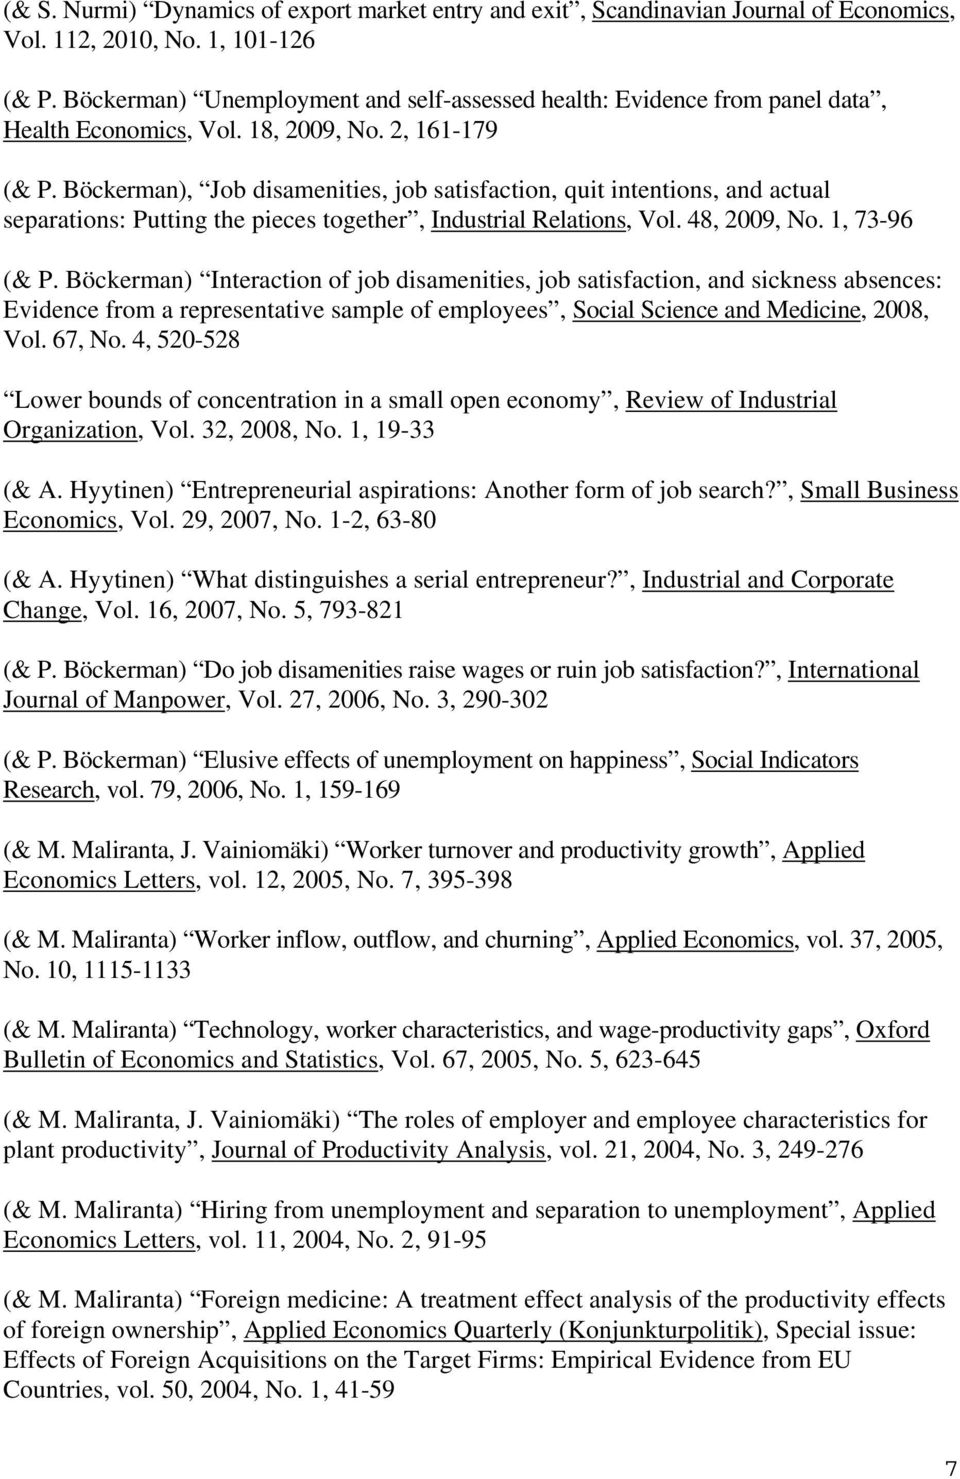 Böckerman), Job disamenities, job satisfaction, quit intentions, and actual separations: Putting the pieces together, Industrial Relations, Vol. 48, 2009, No. 1, 73-96 (& P.